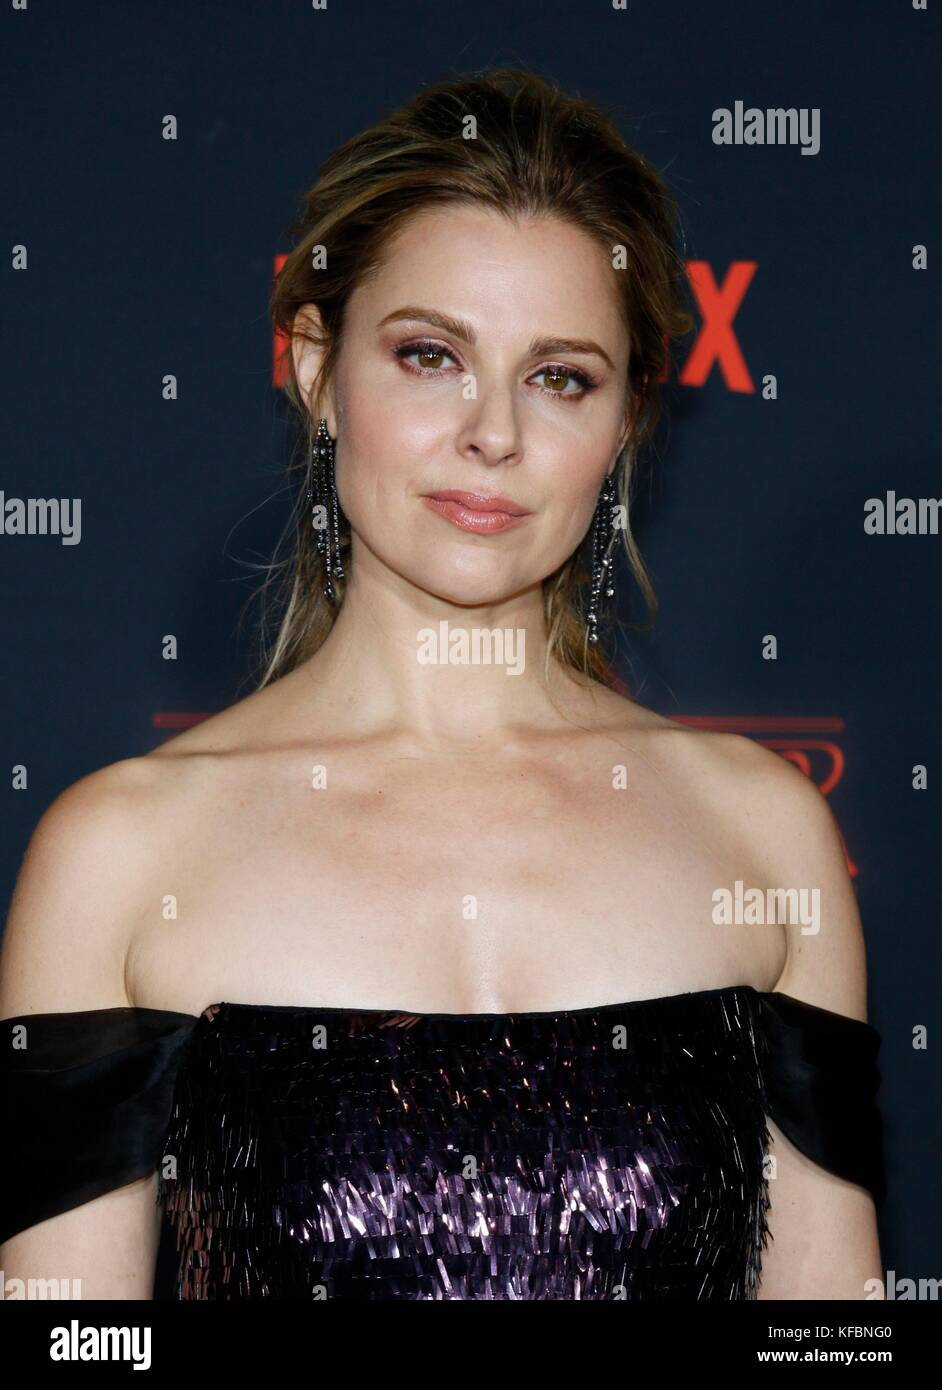 Los Angeles, CA, USA. 26th Oct, 2017. Cara Buono at arrivals for NETFLIX'S STRANGER THINGS 2 Premiere, Regency - Stock Image